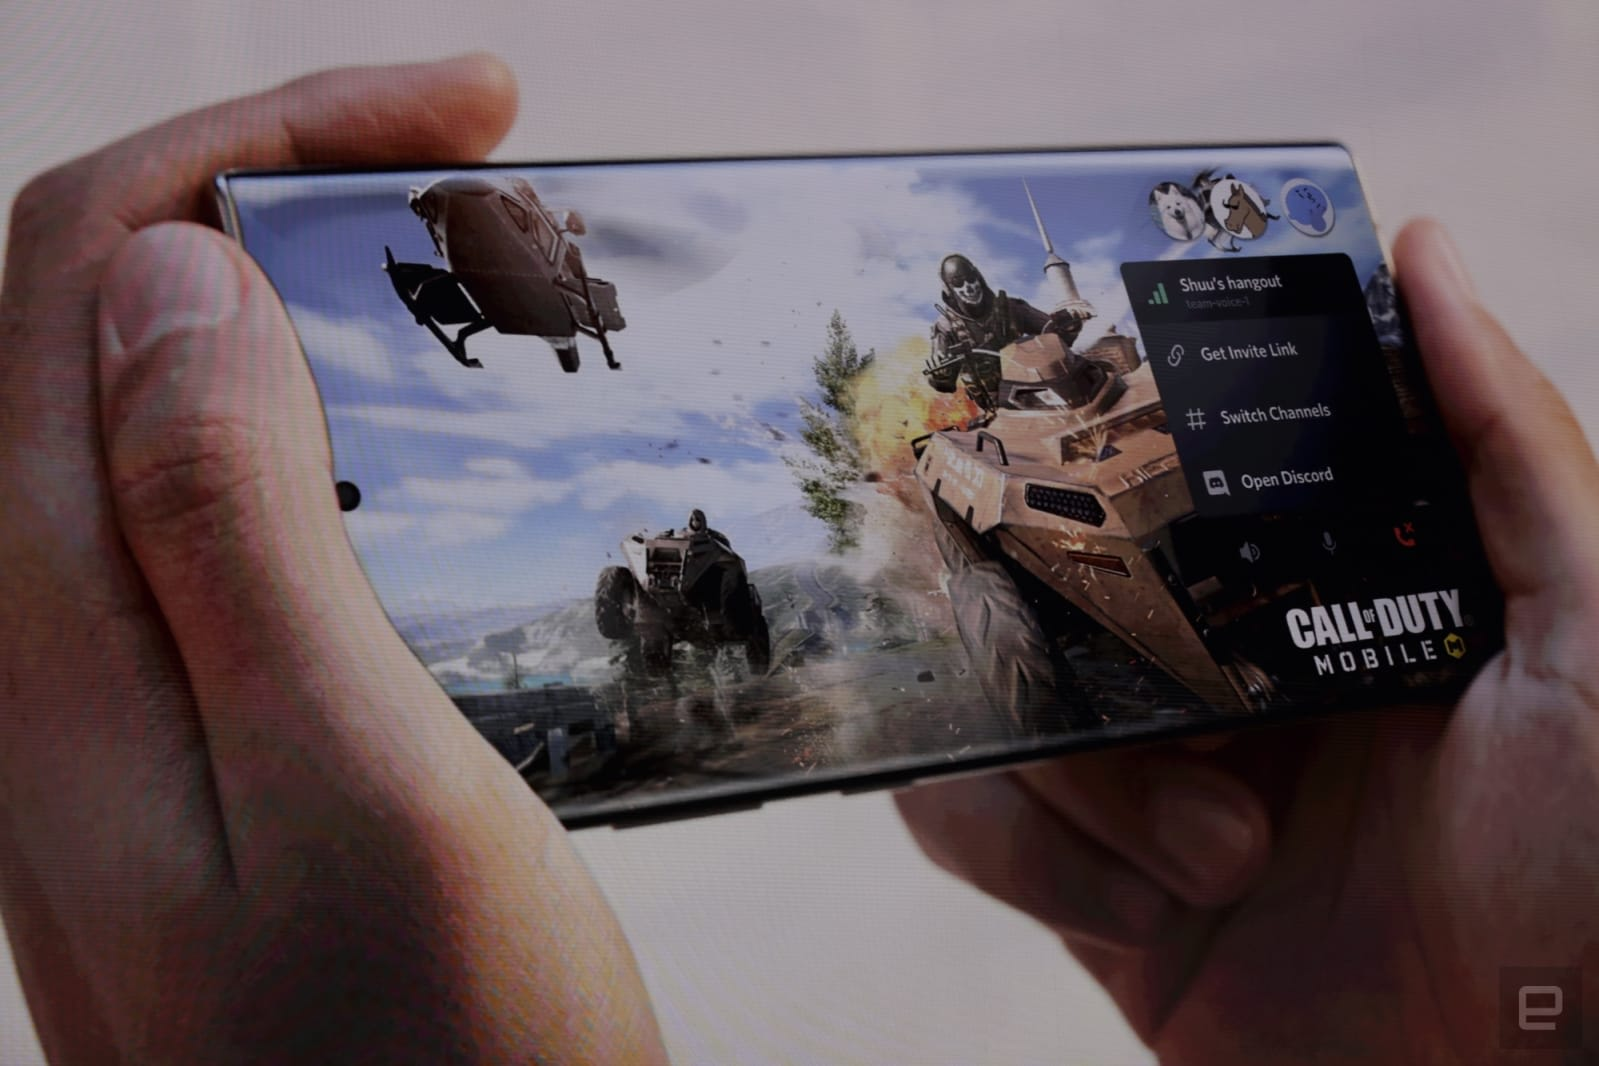 The Galaxy Note 10 can stream games from your PC